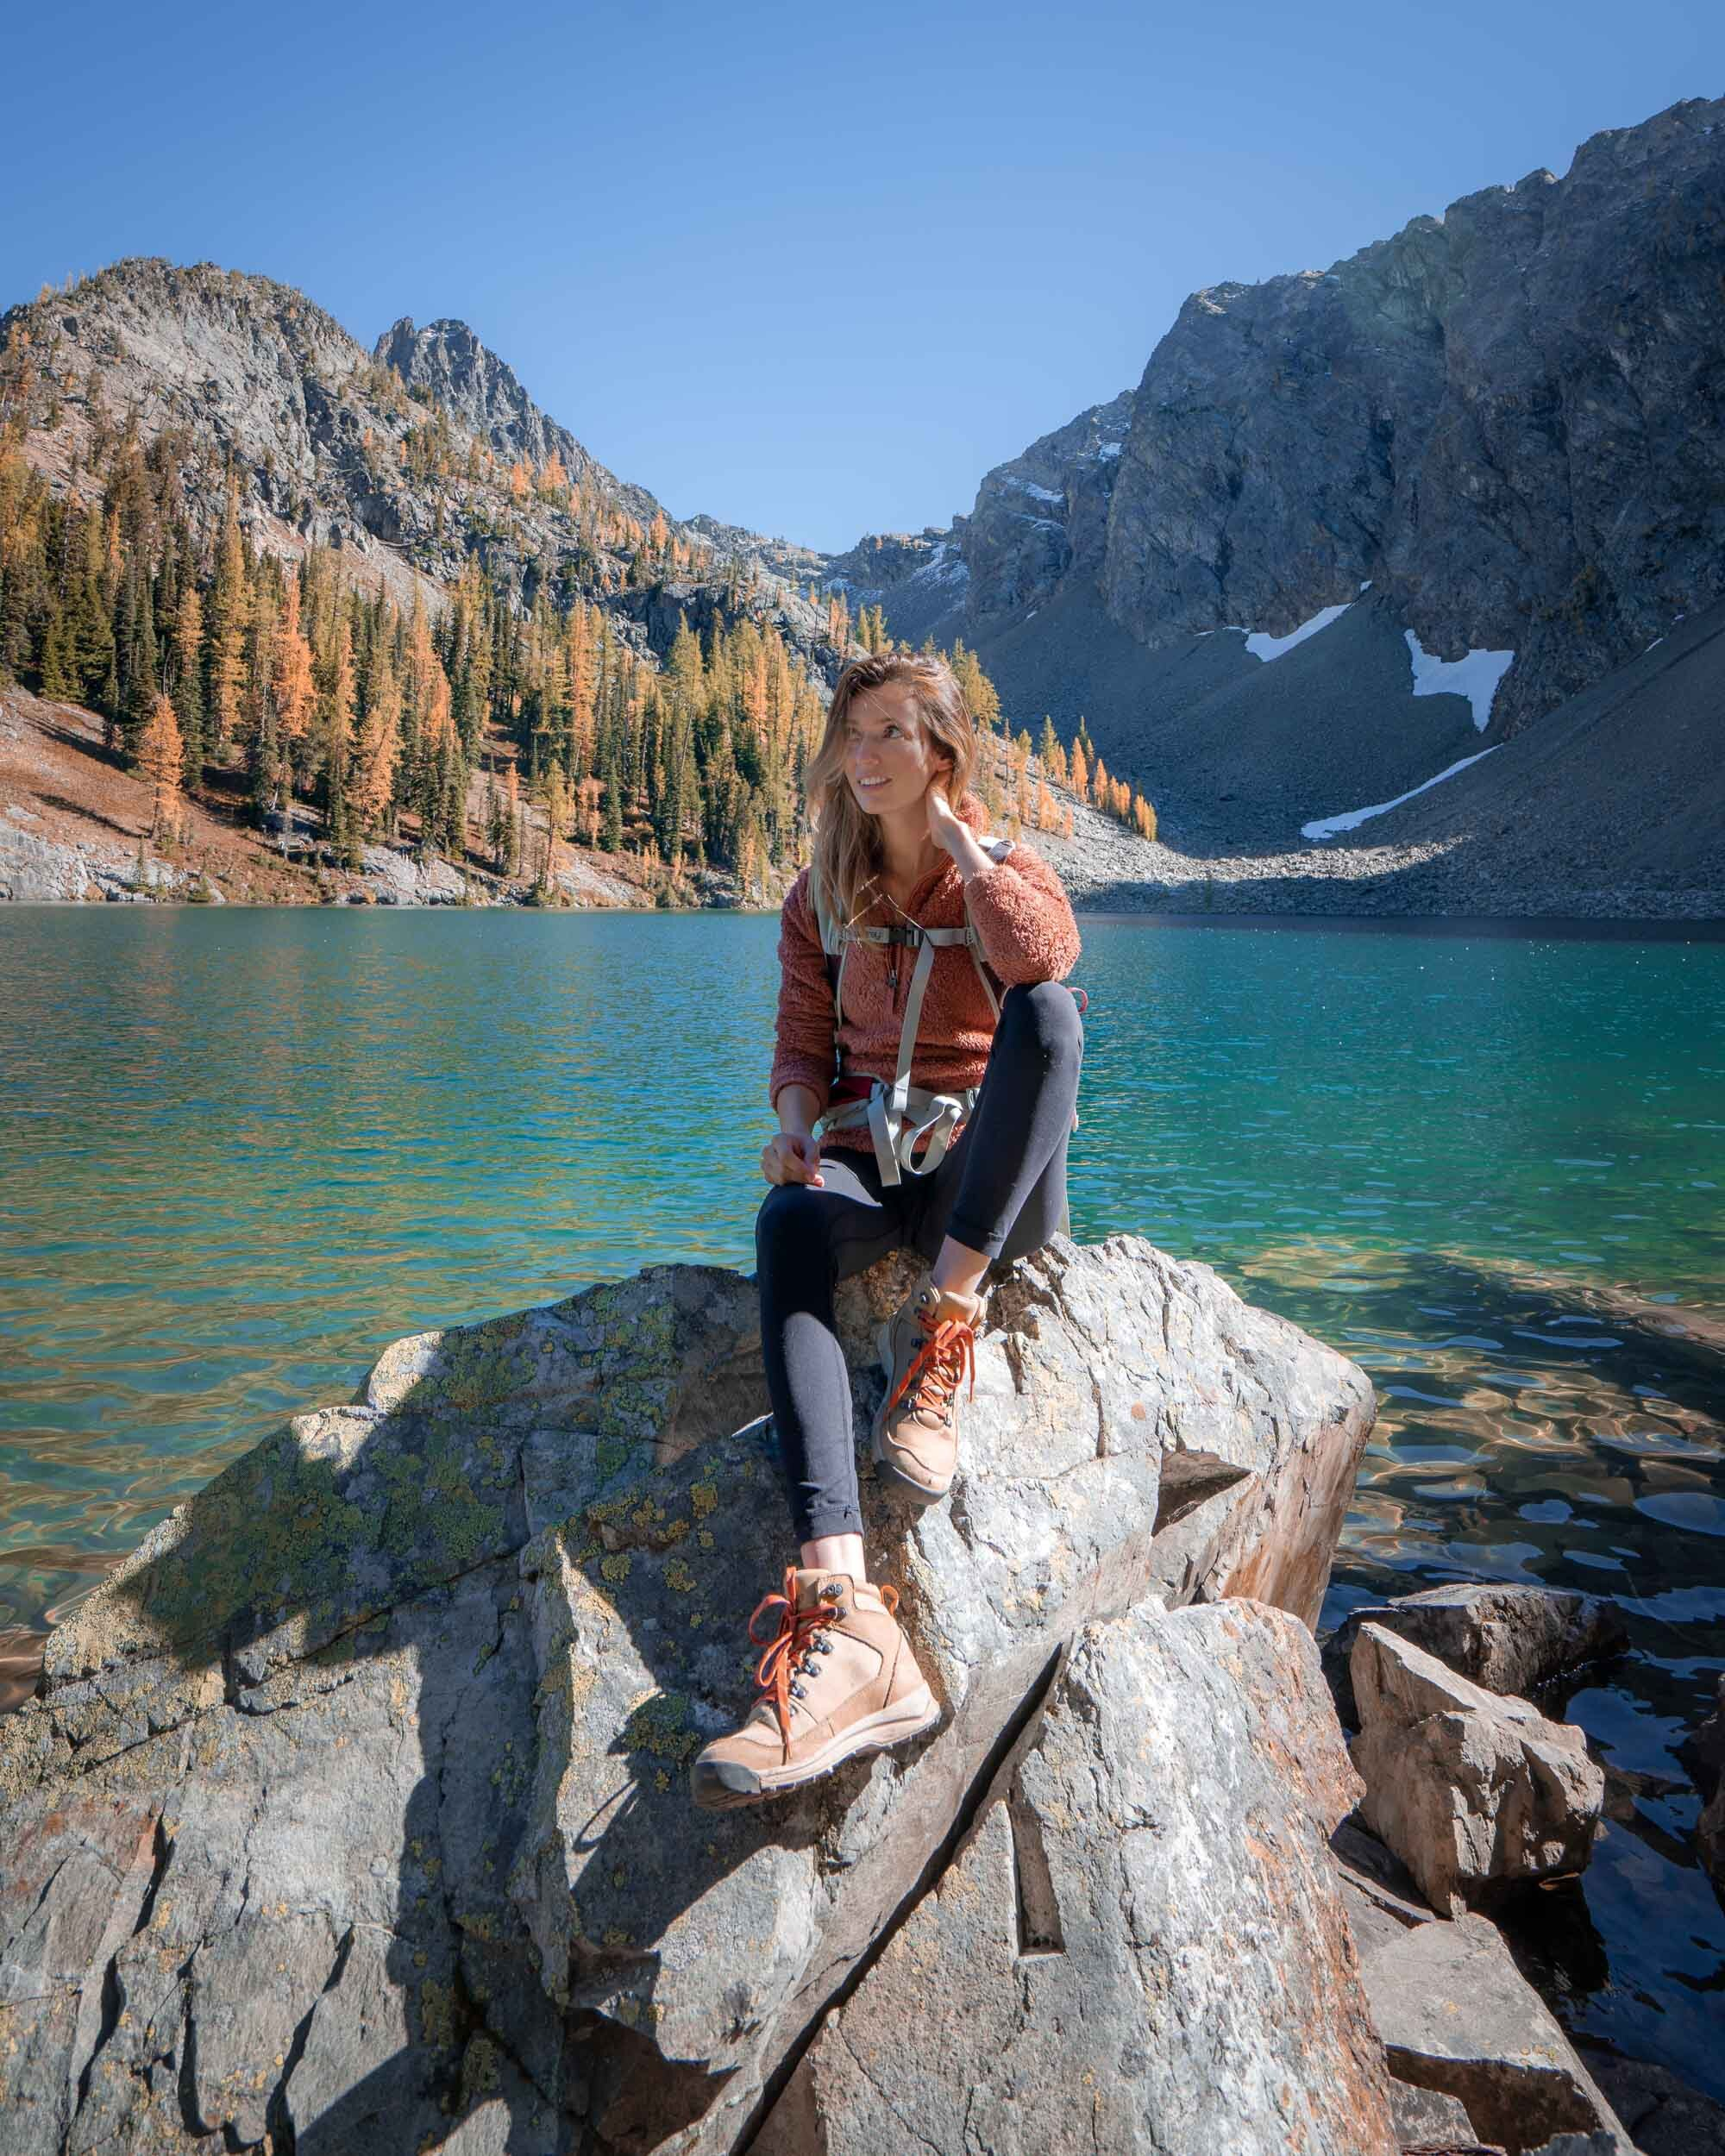 Hanging out at Blue Lake in the North Cascades. Wearing: Patagonia Fleece  Jacket  and Danner  Hiker Boot .